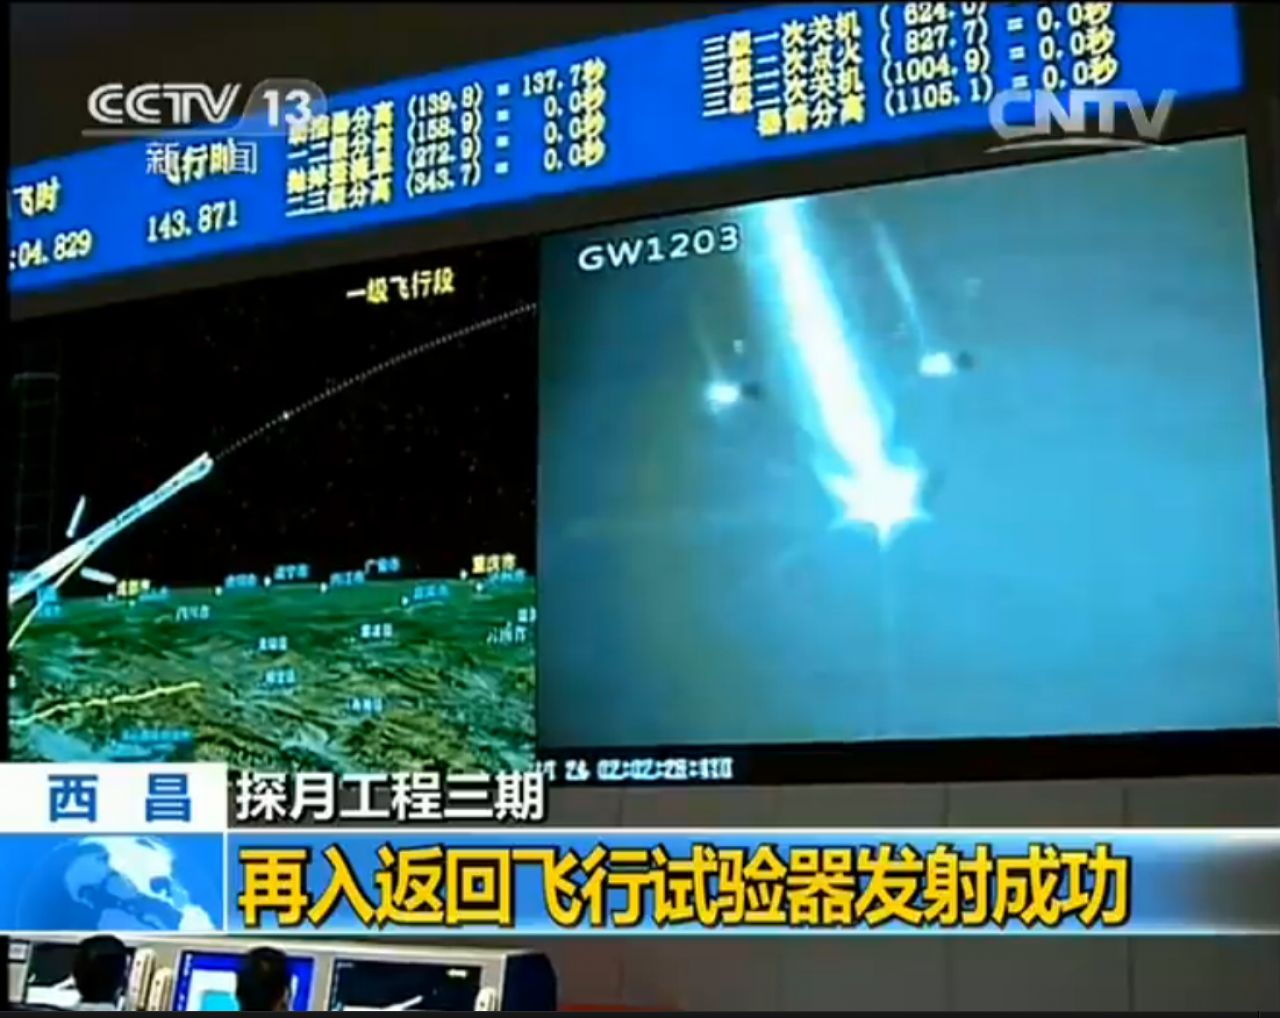 A view from Mission Control for the launch of the Chang'e-5 T1 lunar return test flight that lifted off from the Xichang Satellite Launch Center.